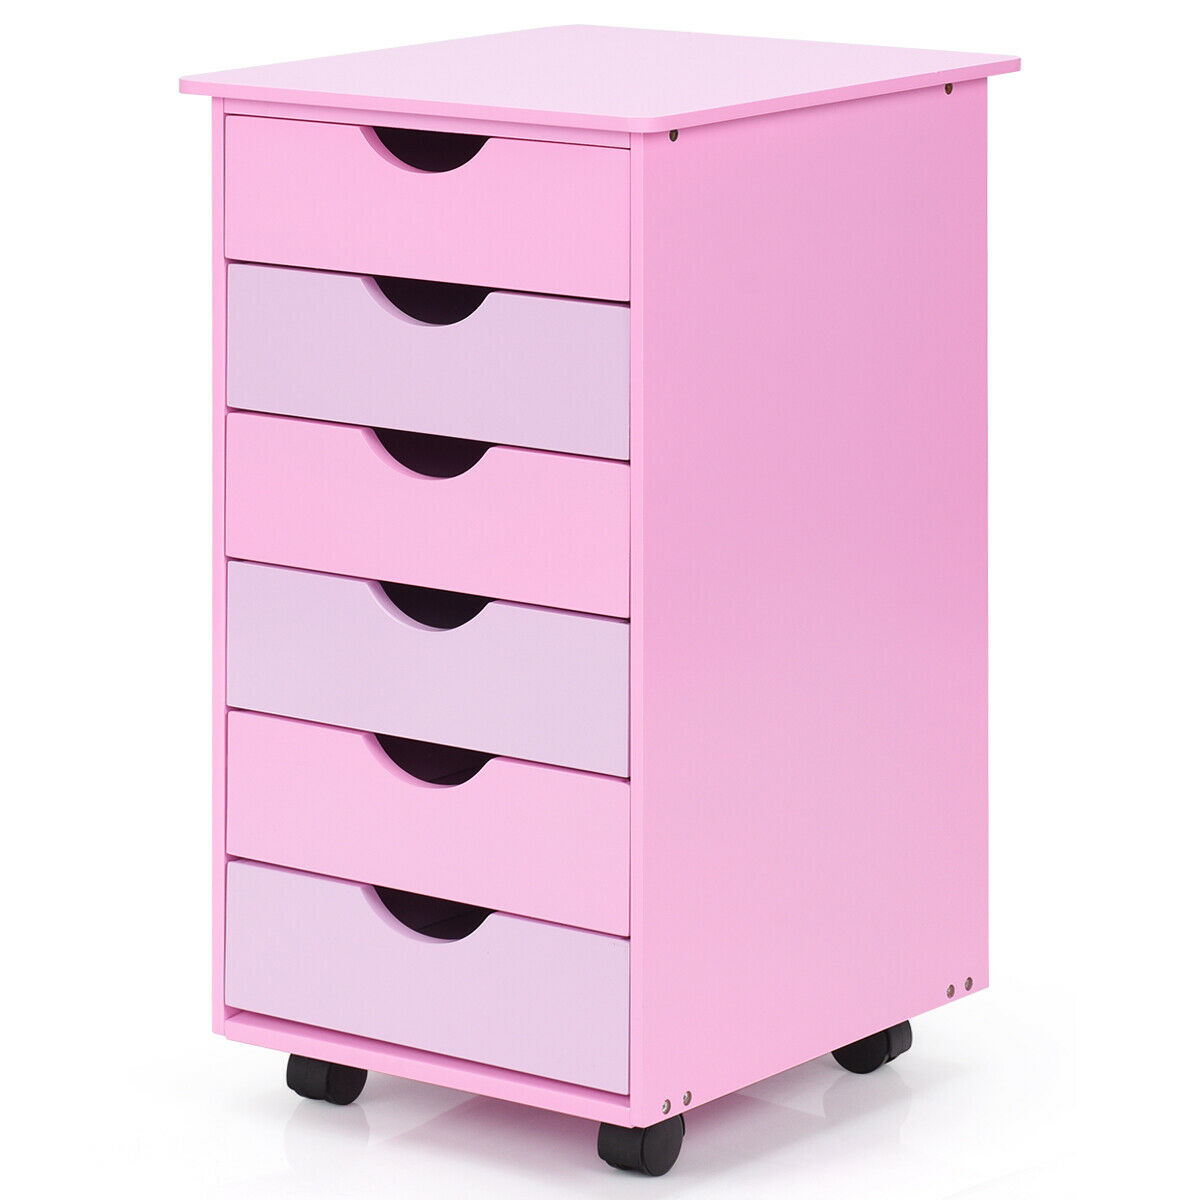 Costway 6 Drawer Wood Mobile File Cabinet Rolling Organizer Storage Office Home Pink Walmart Com